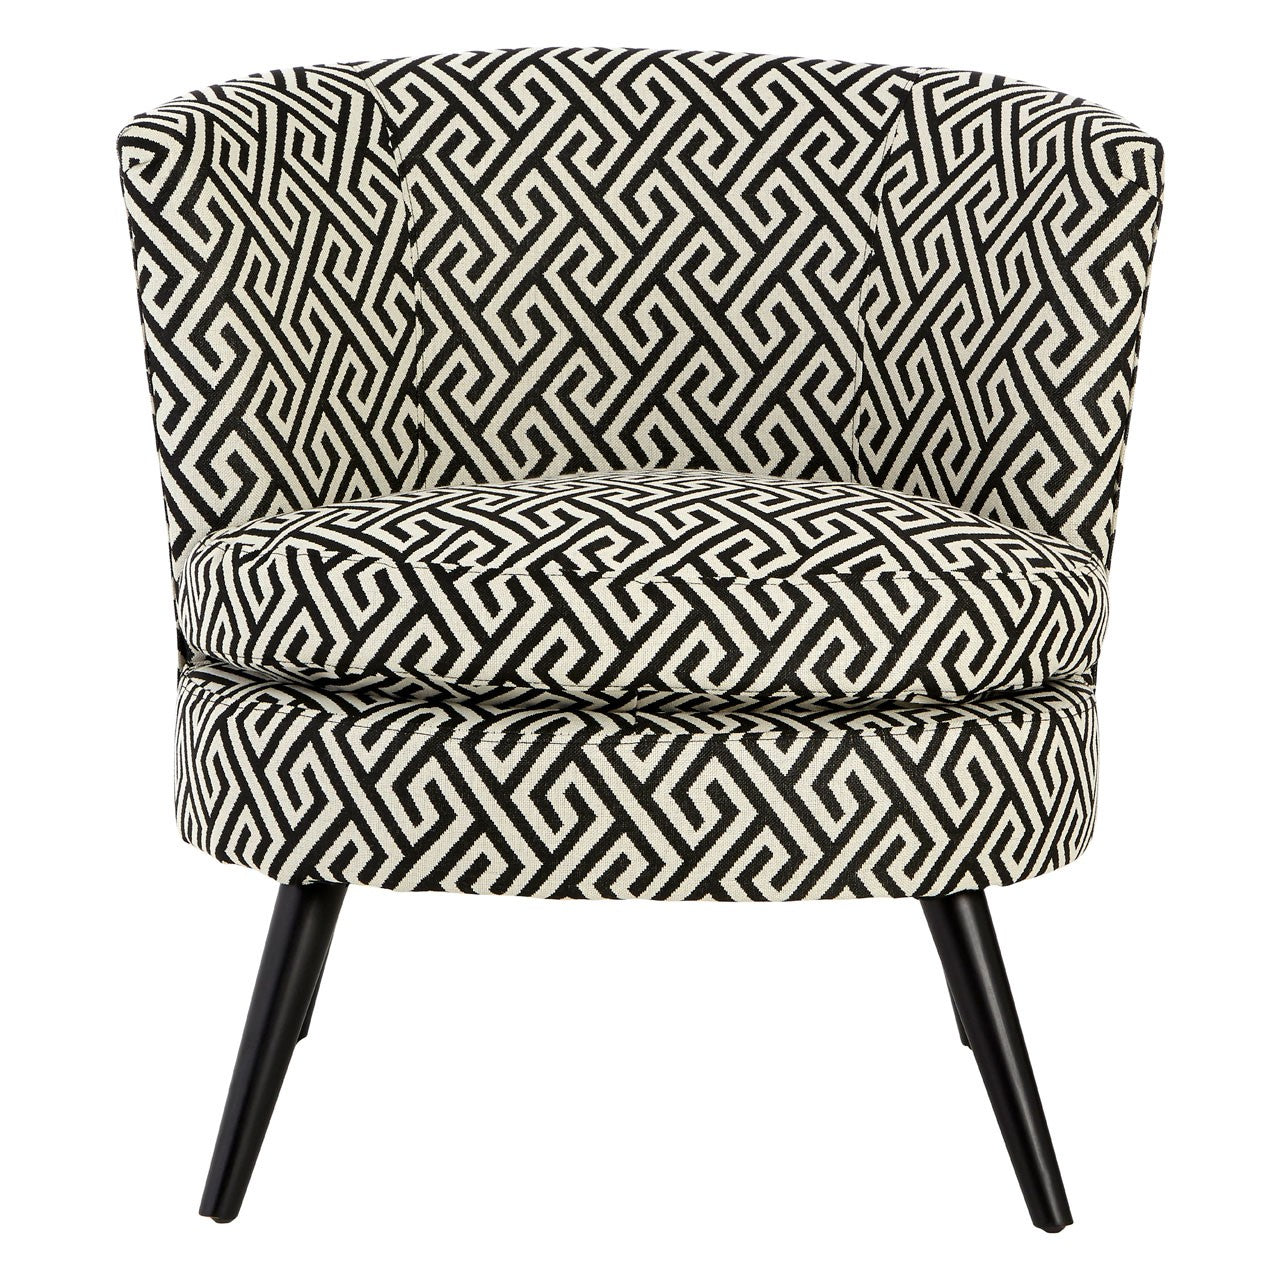 Round Black And White Jacquard Armchair